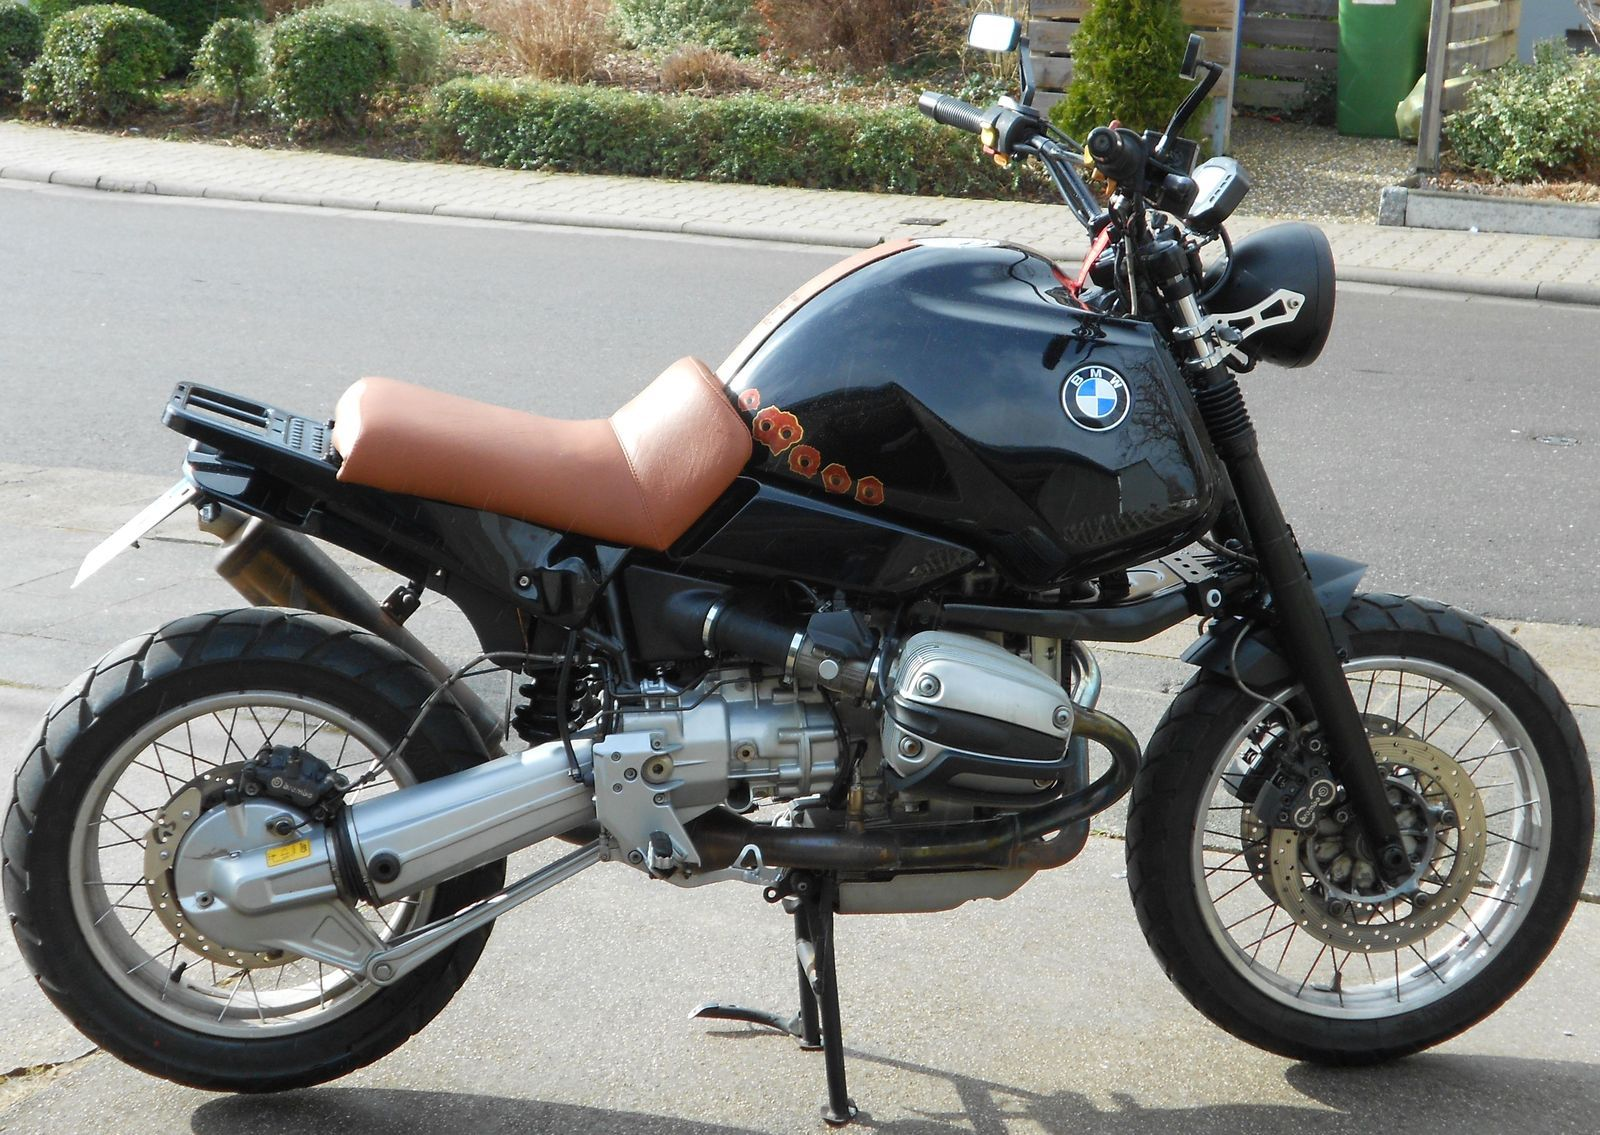 r 1100 gs scrambler umbau cafe racer bmw r 1100 gs r. Black Bedroom Furniture Sets. Home Design Ideas